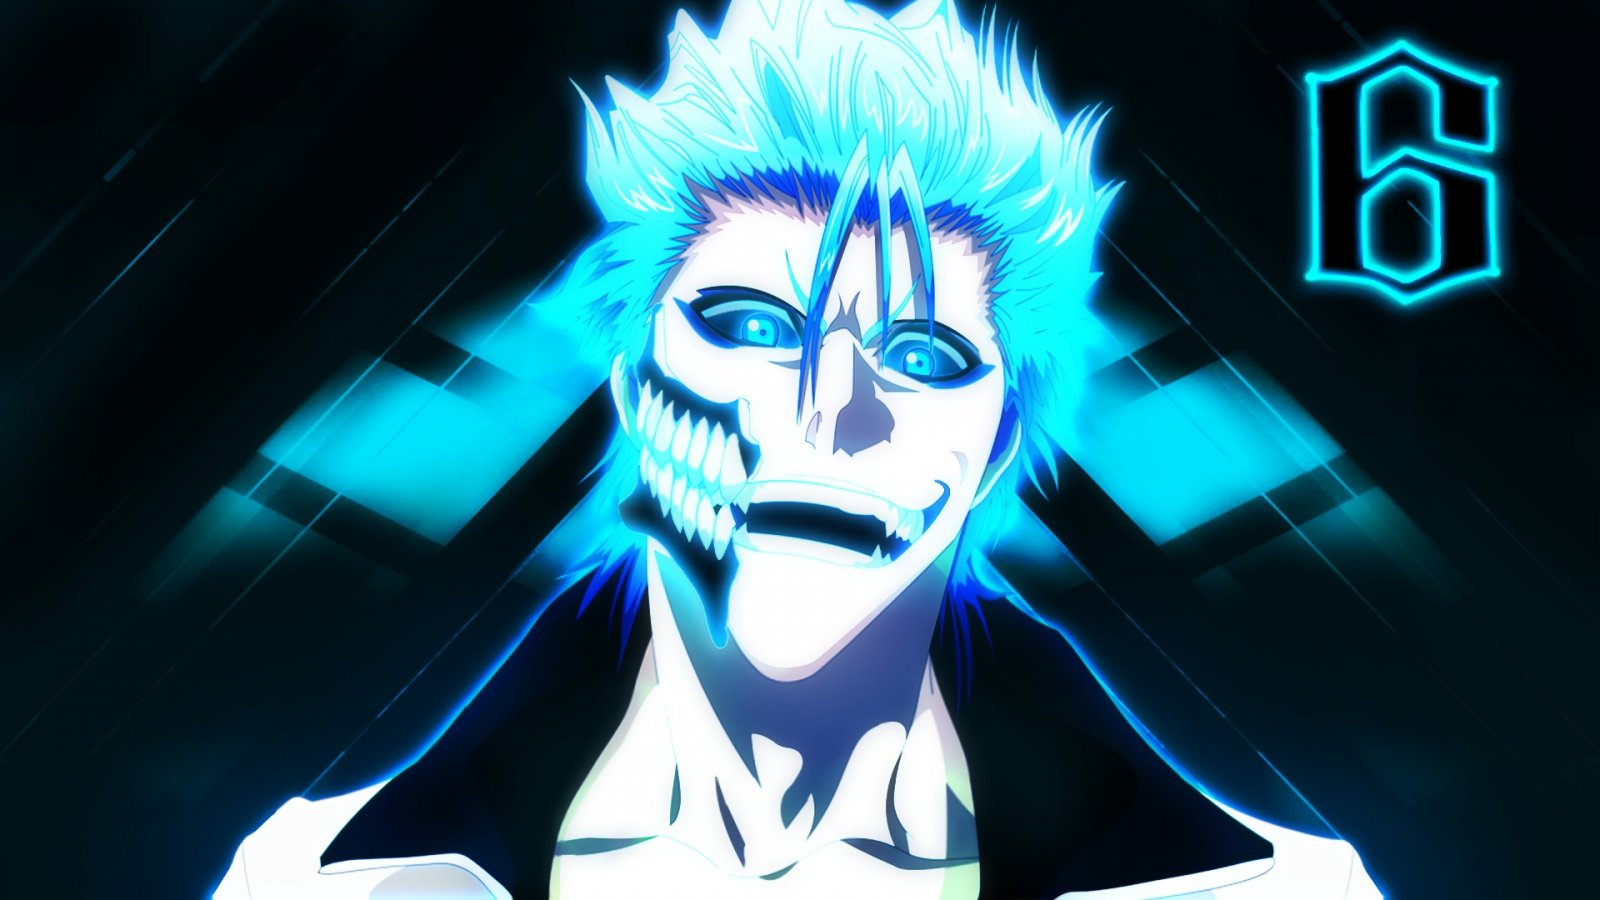 Grimmjow.Jeagerjaques.full.874072.jpg